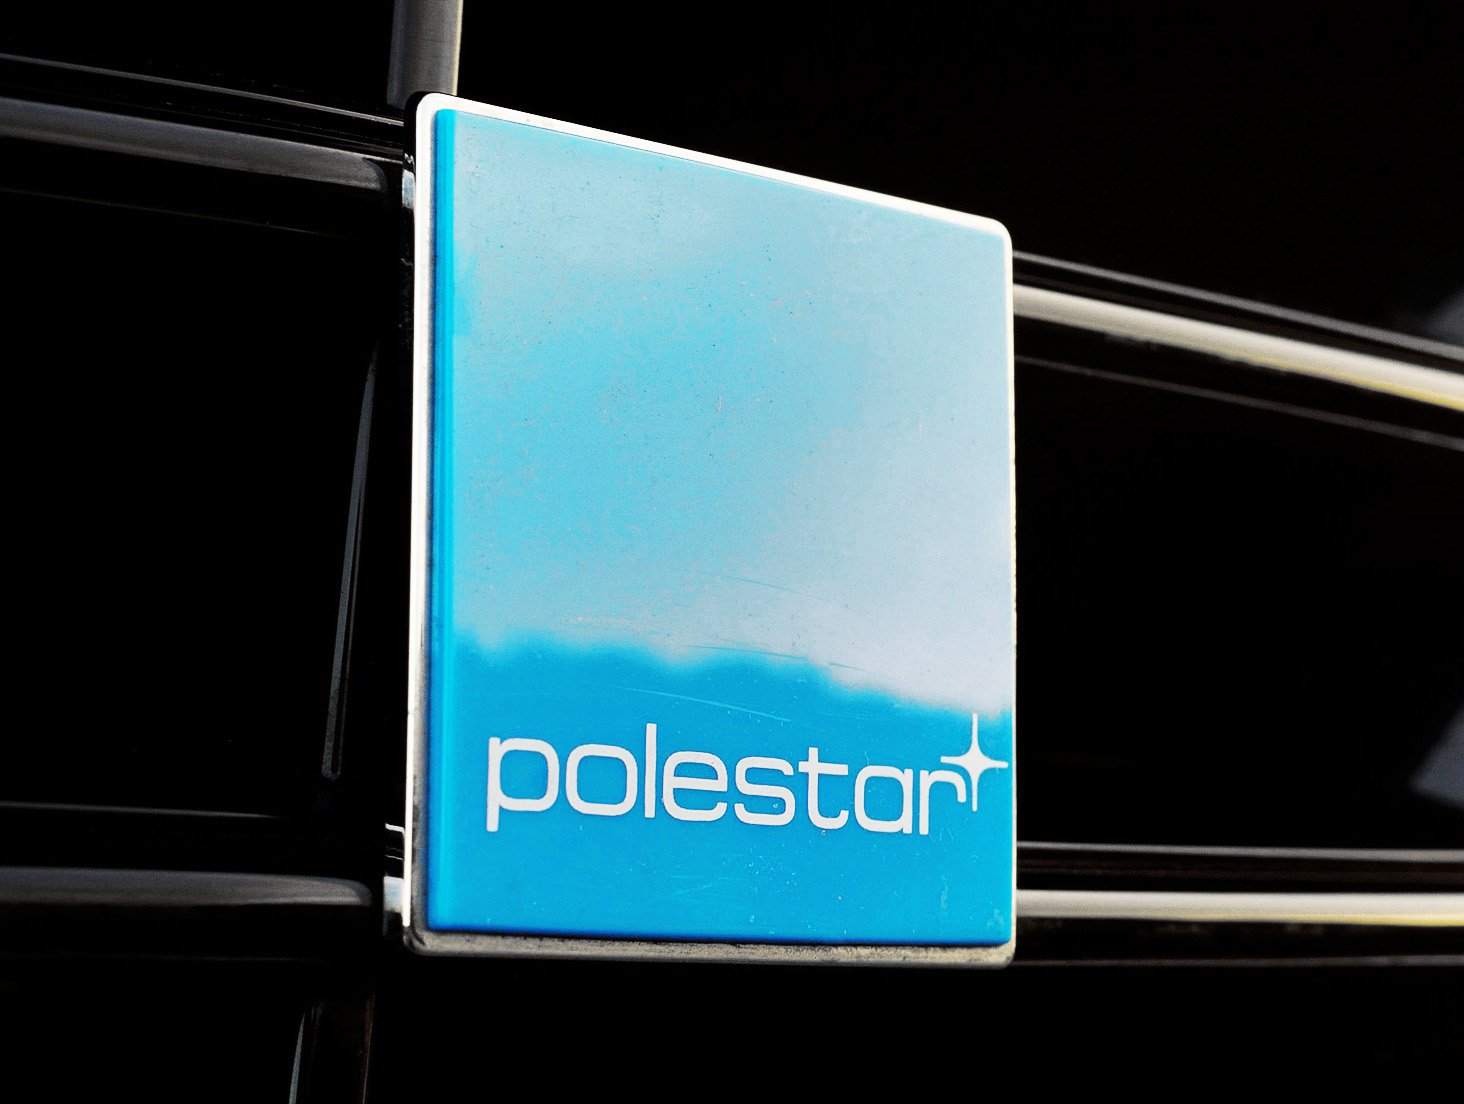 https://listcarbrands.com/wp-content/uploads/2017/10/Polestar-logo-color.jpg